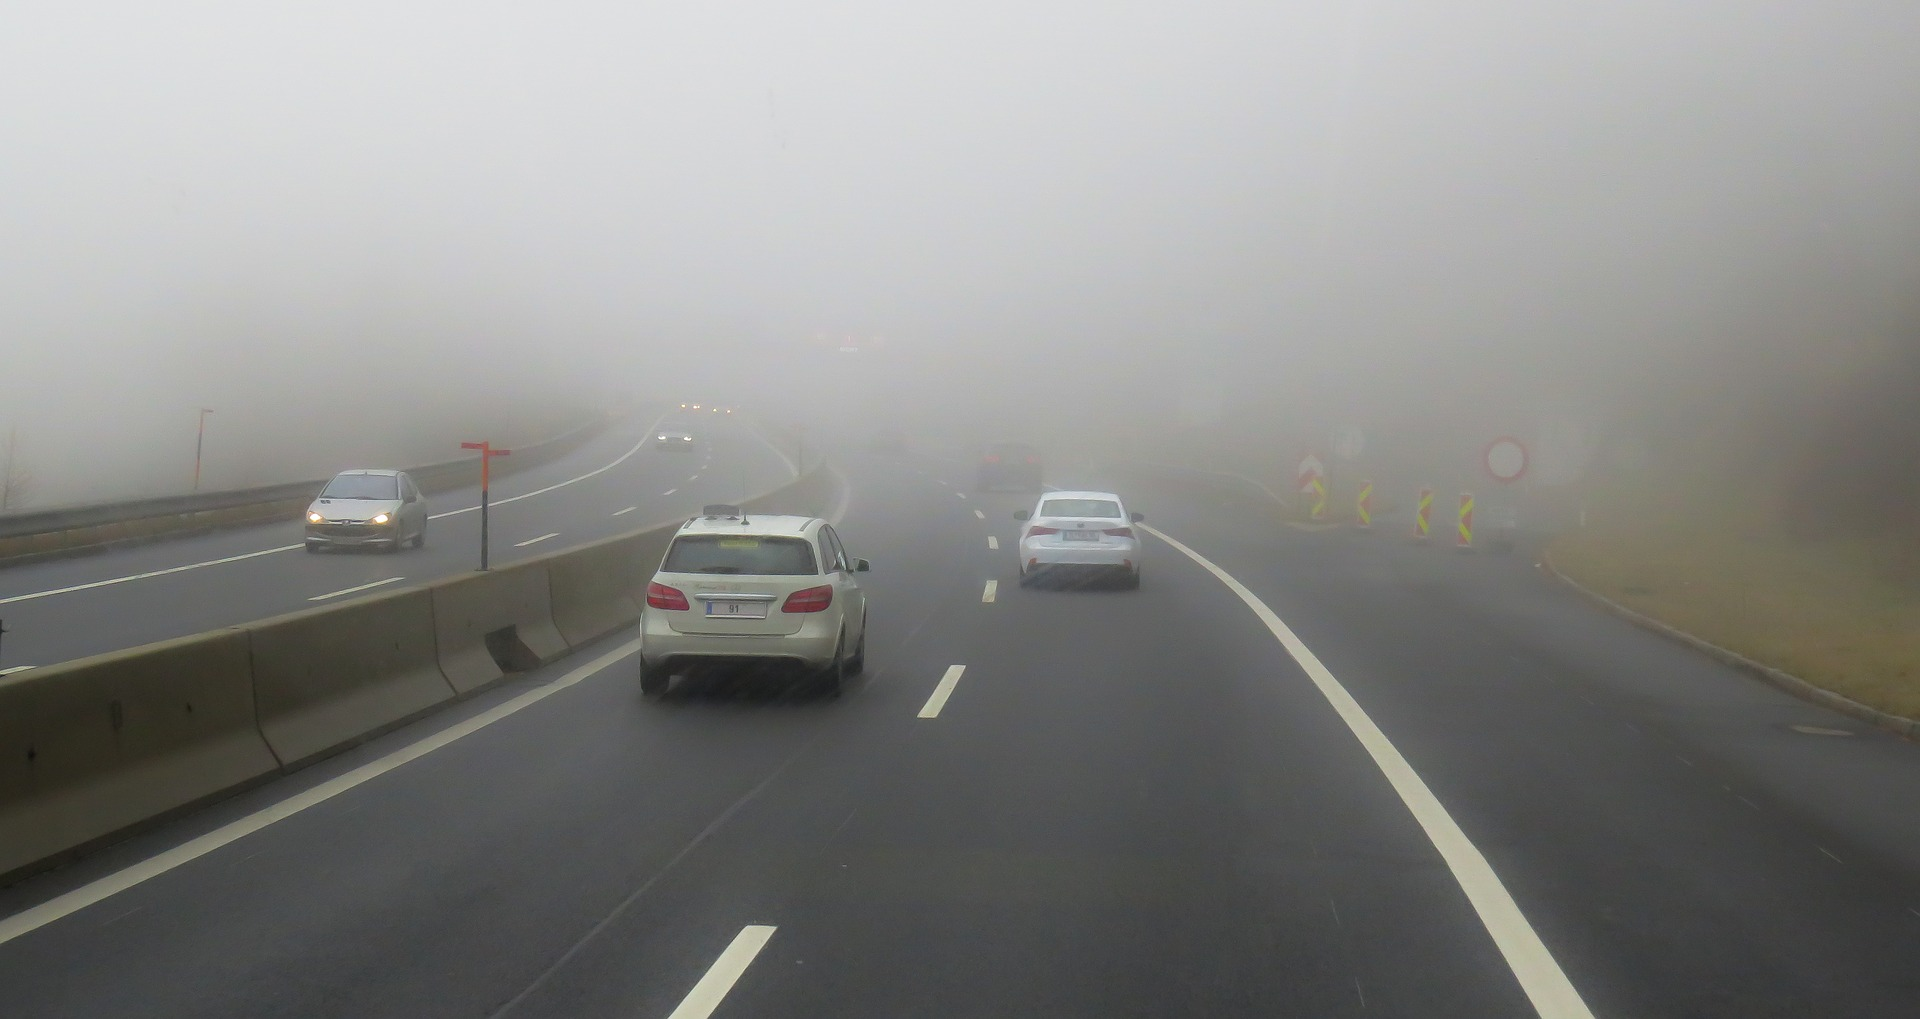 Drivers need to be aware of heavy fog across the region this morning (Pixabay)